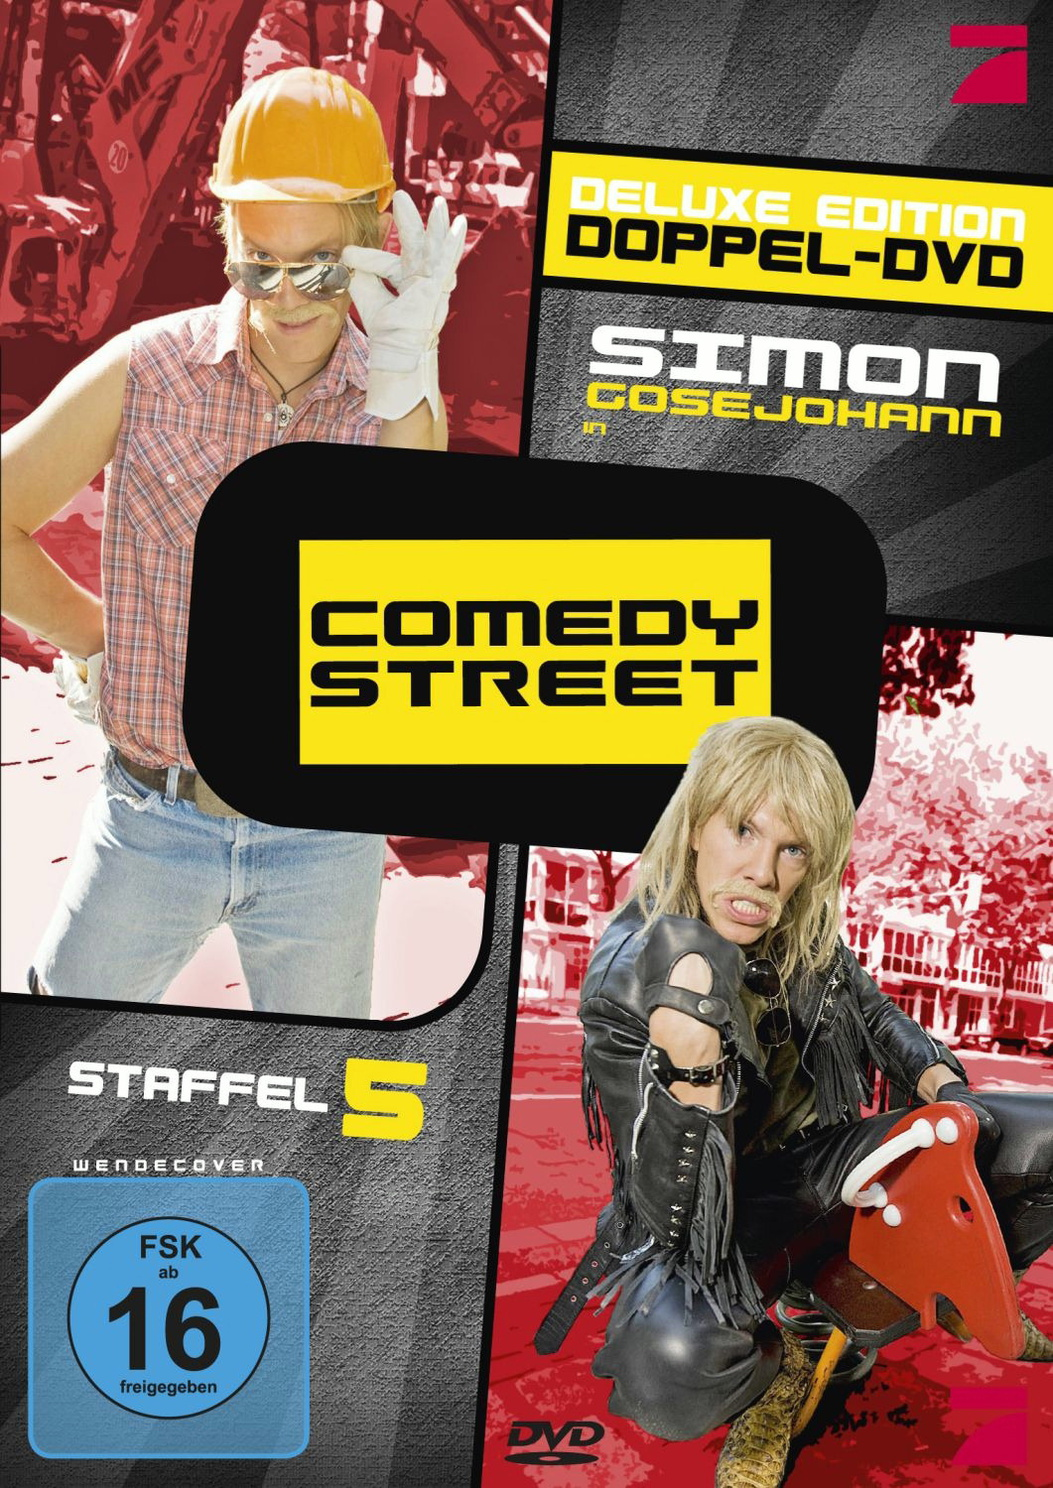 Comedy Street - Staffel 5 - Deluxe Edition